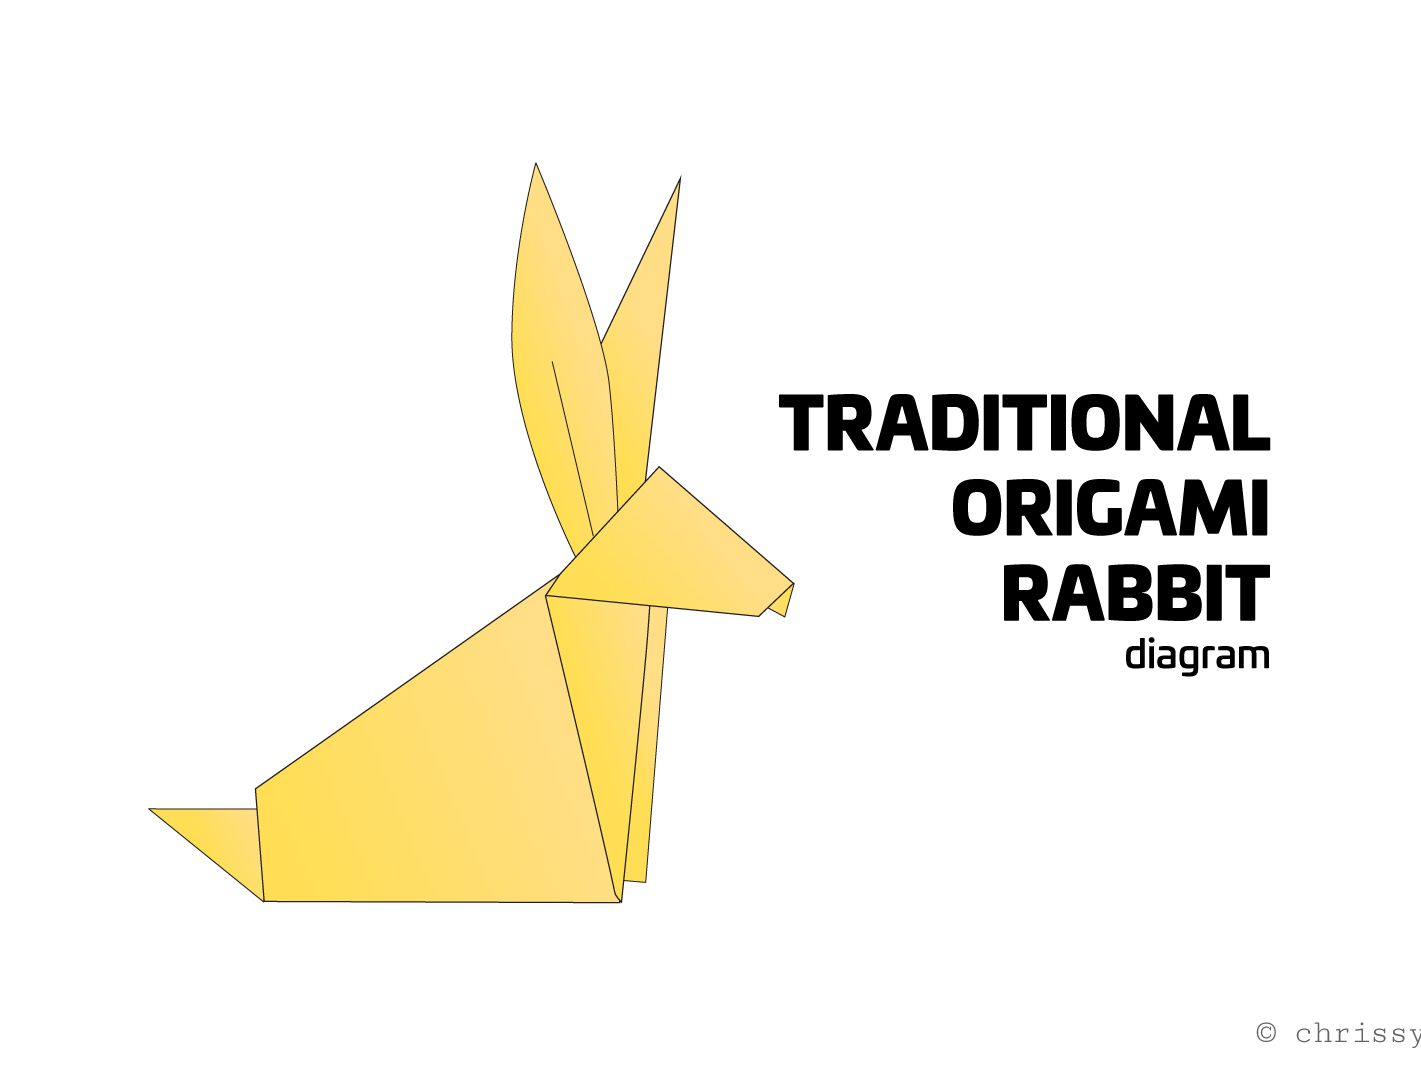 Free Origami Instructions & Diagrams - Learn How to Make Origami | 1066x1421